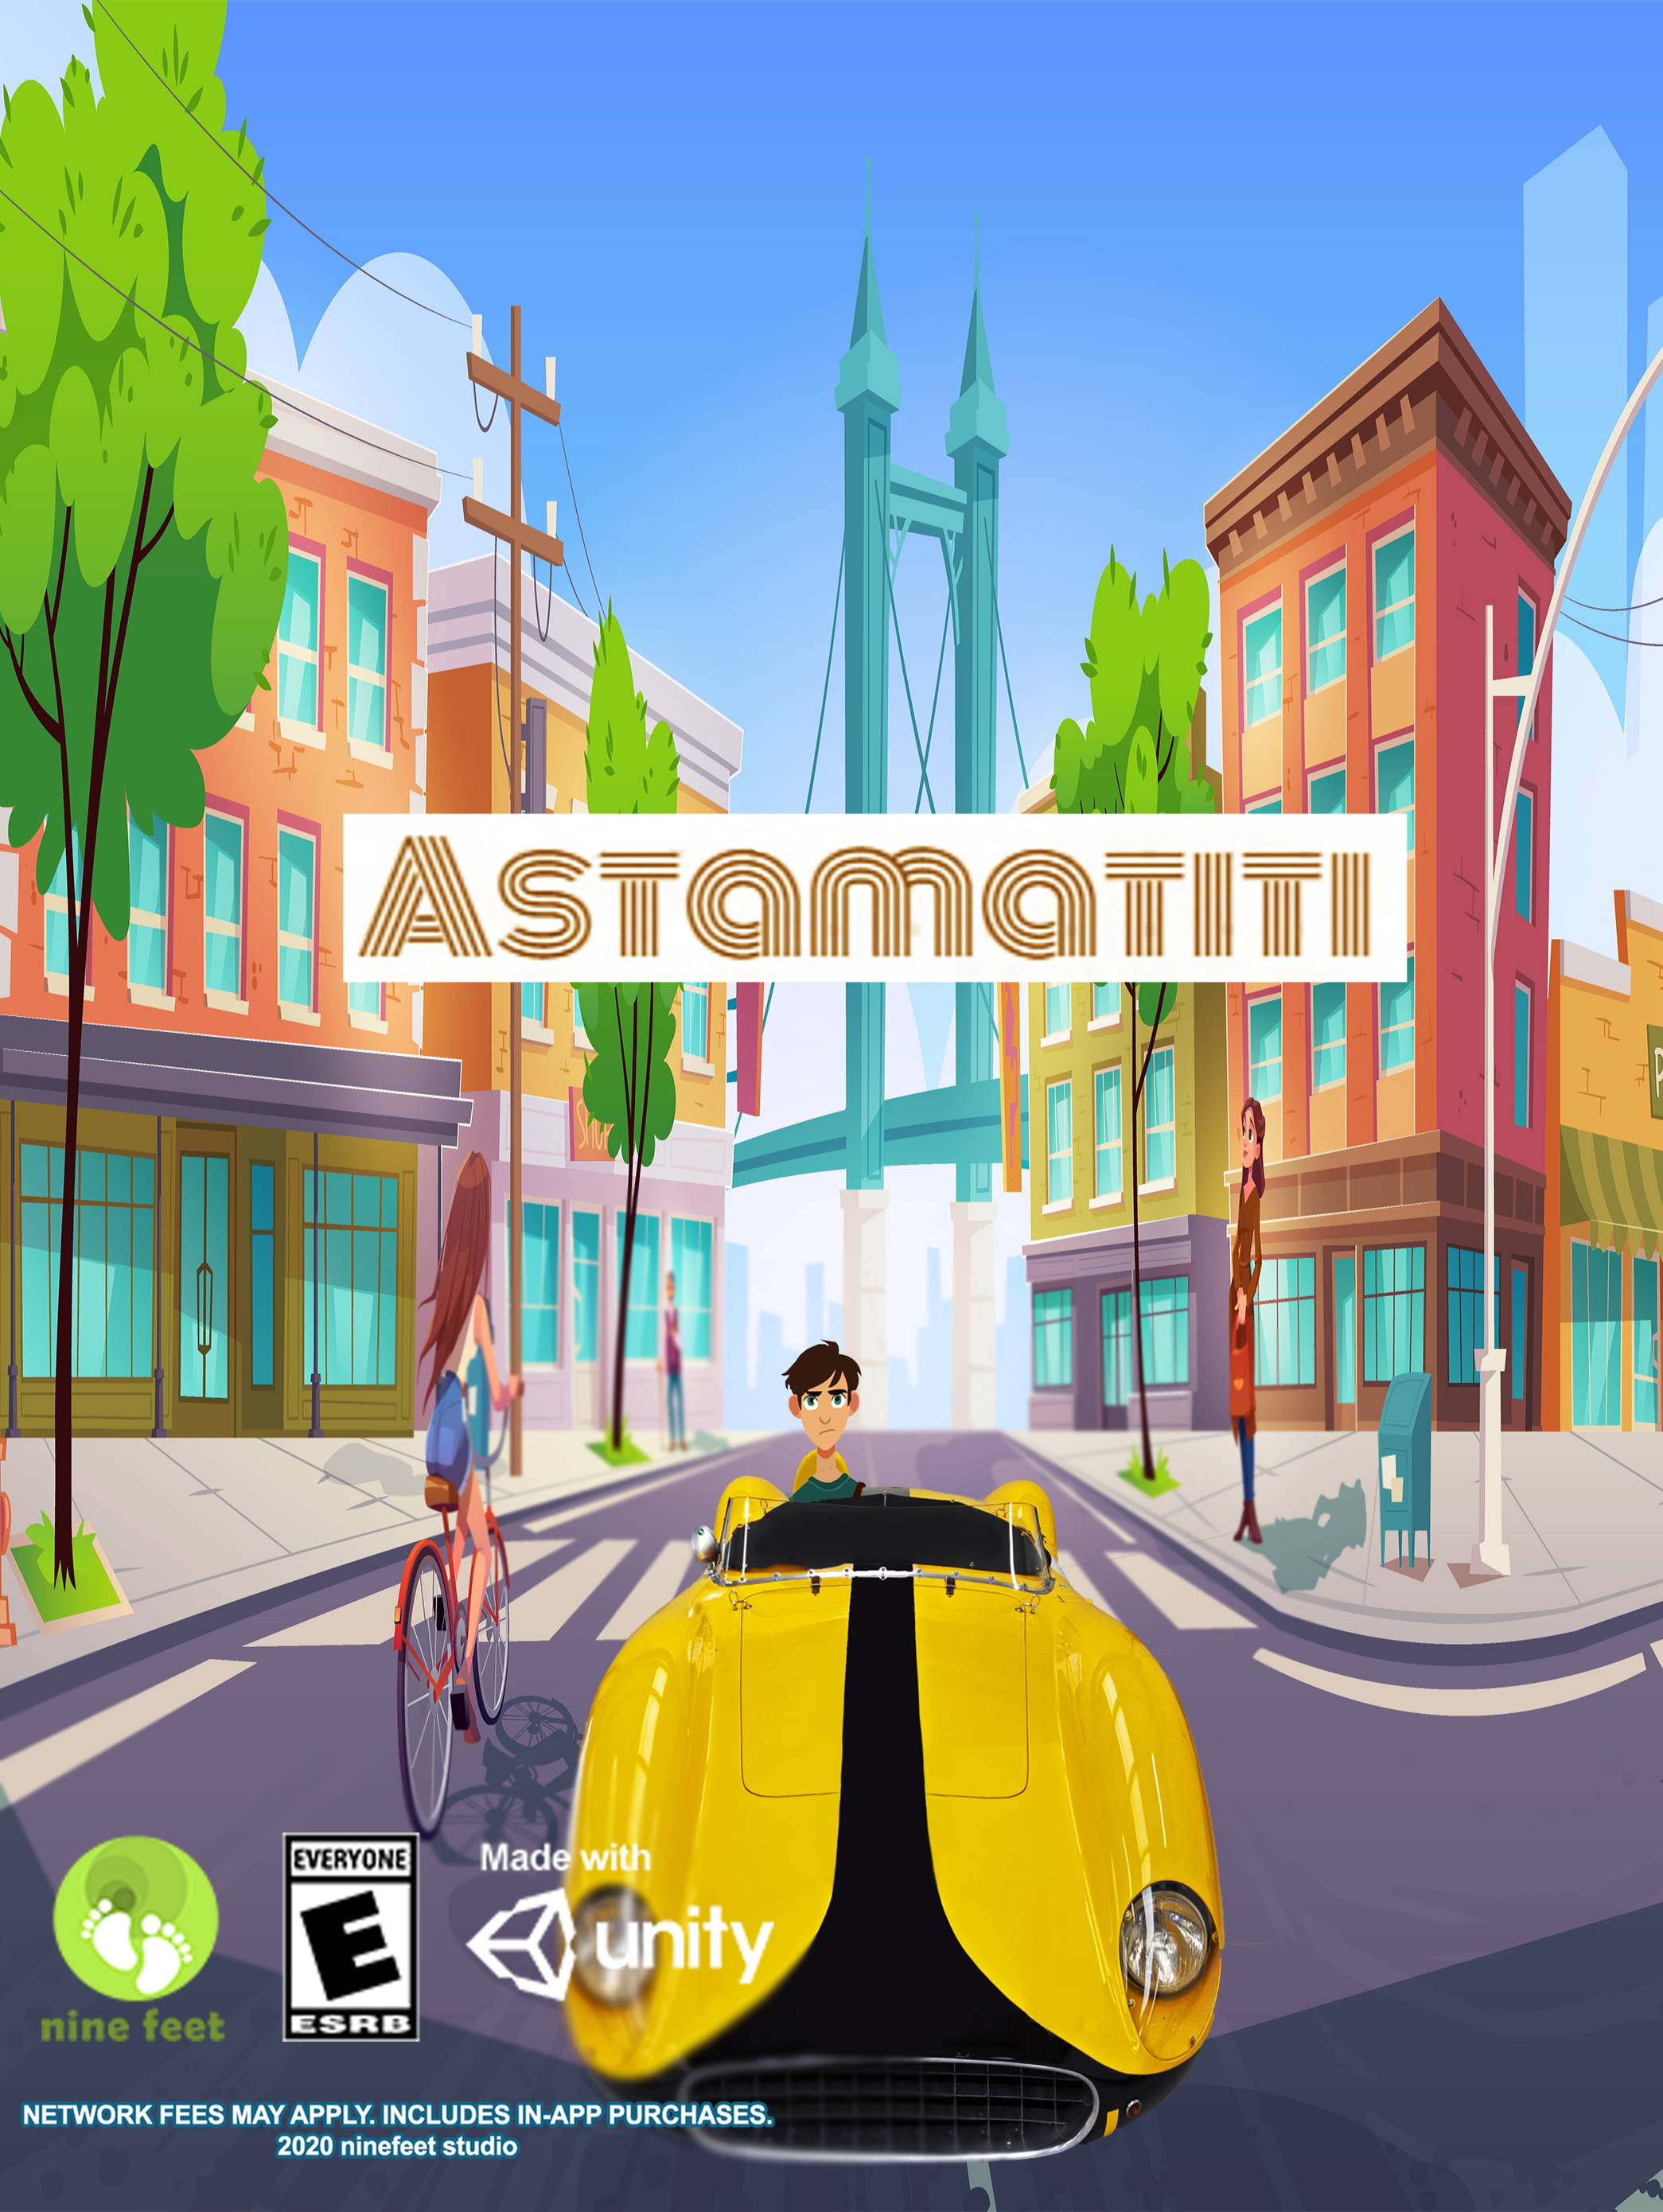 Screenshot 1: Astamatiti